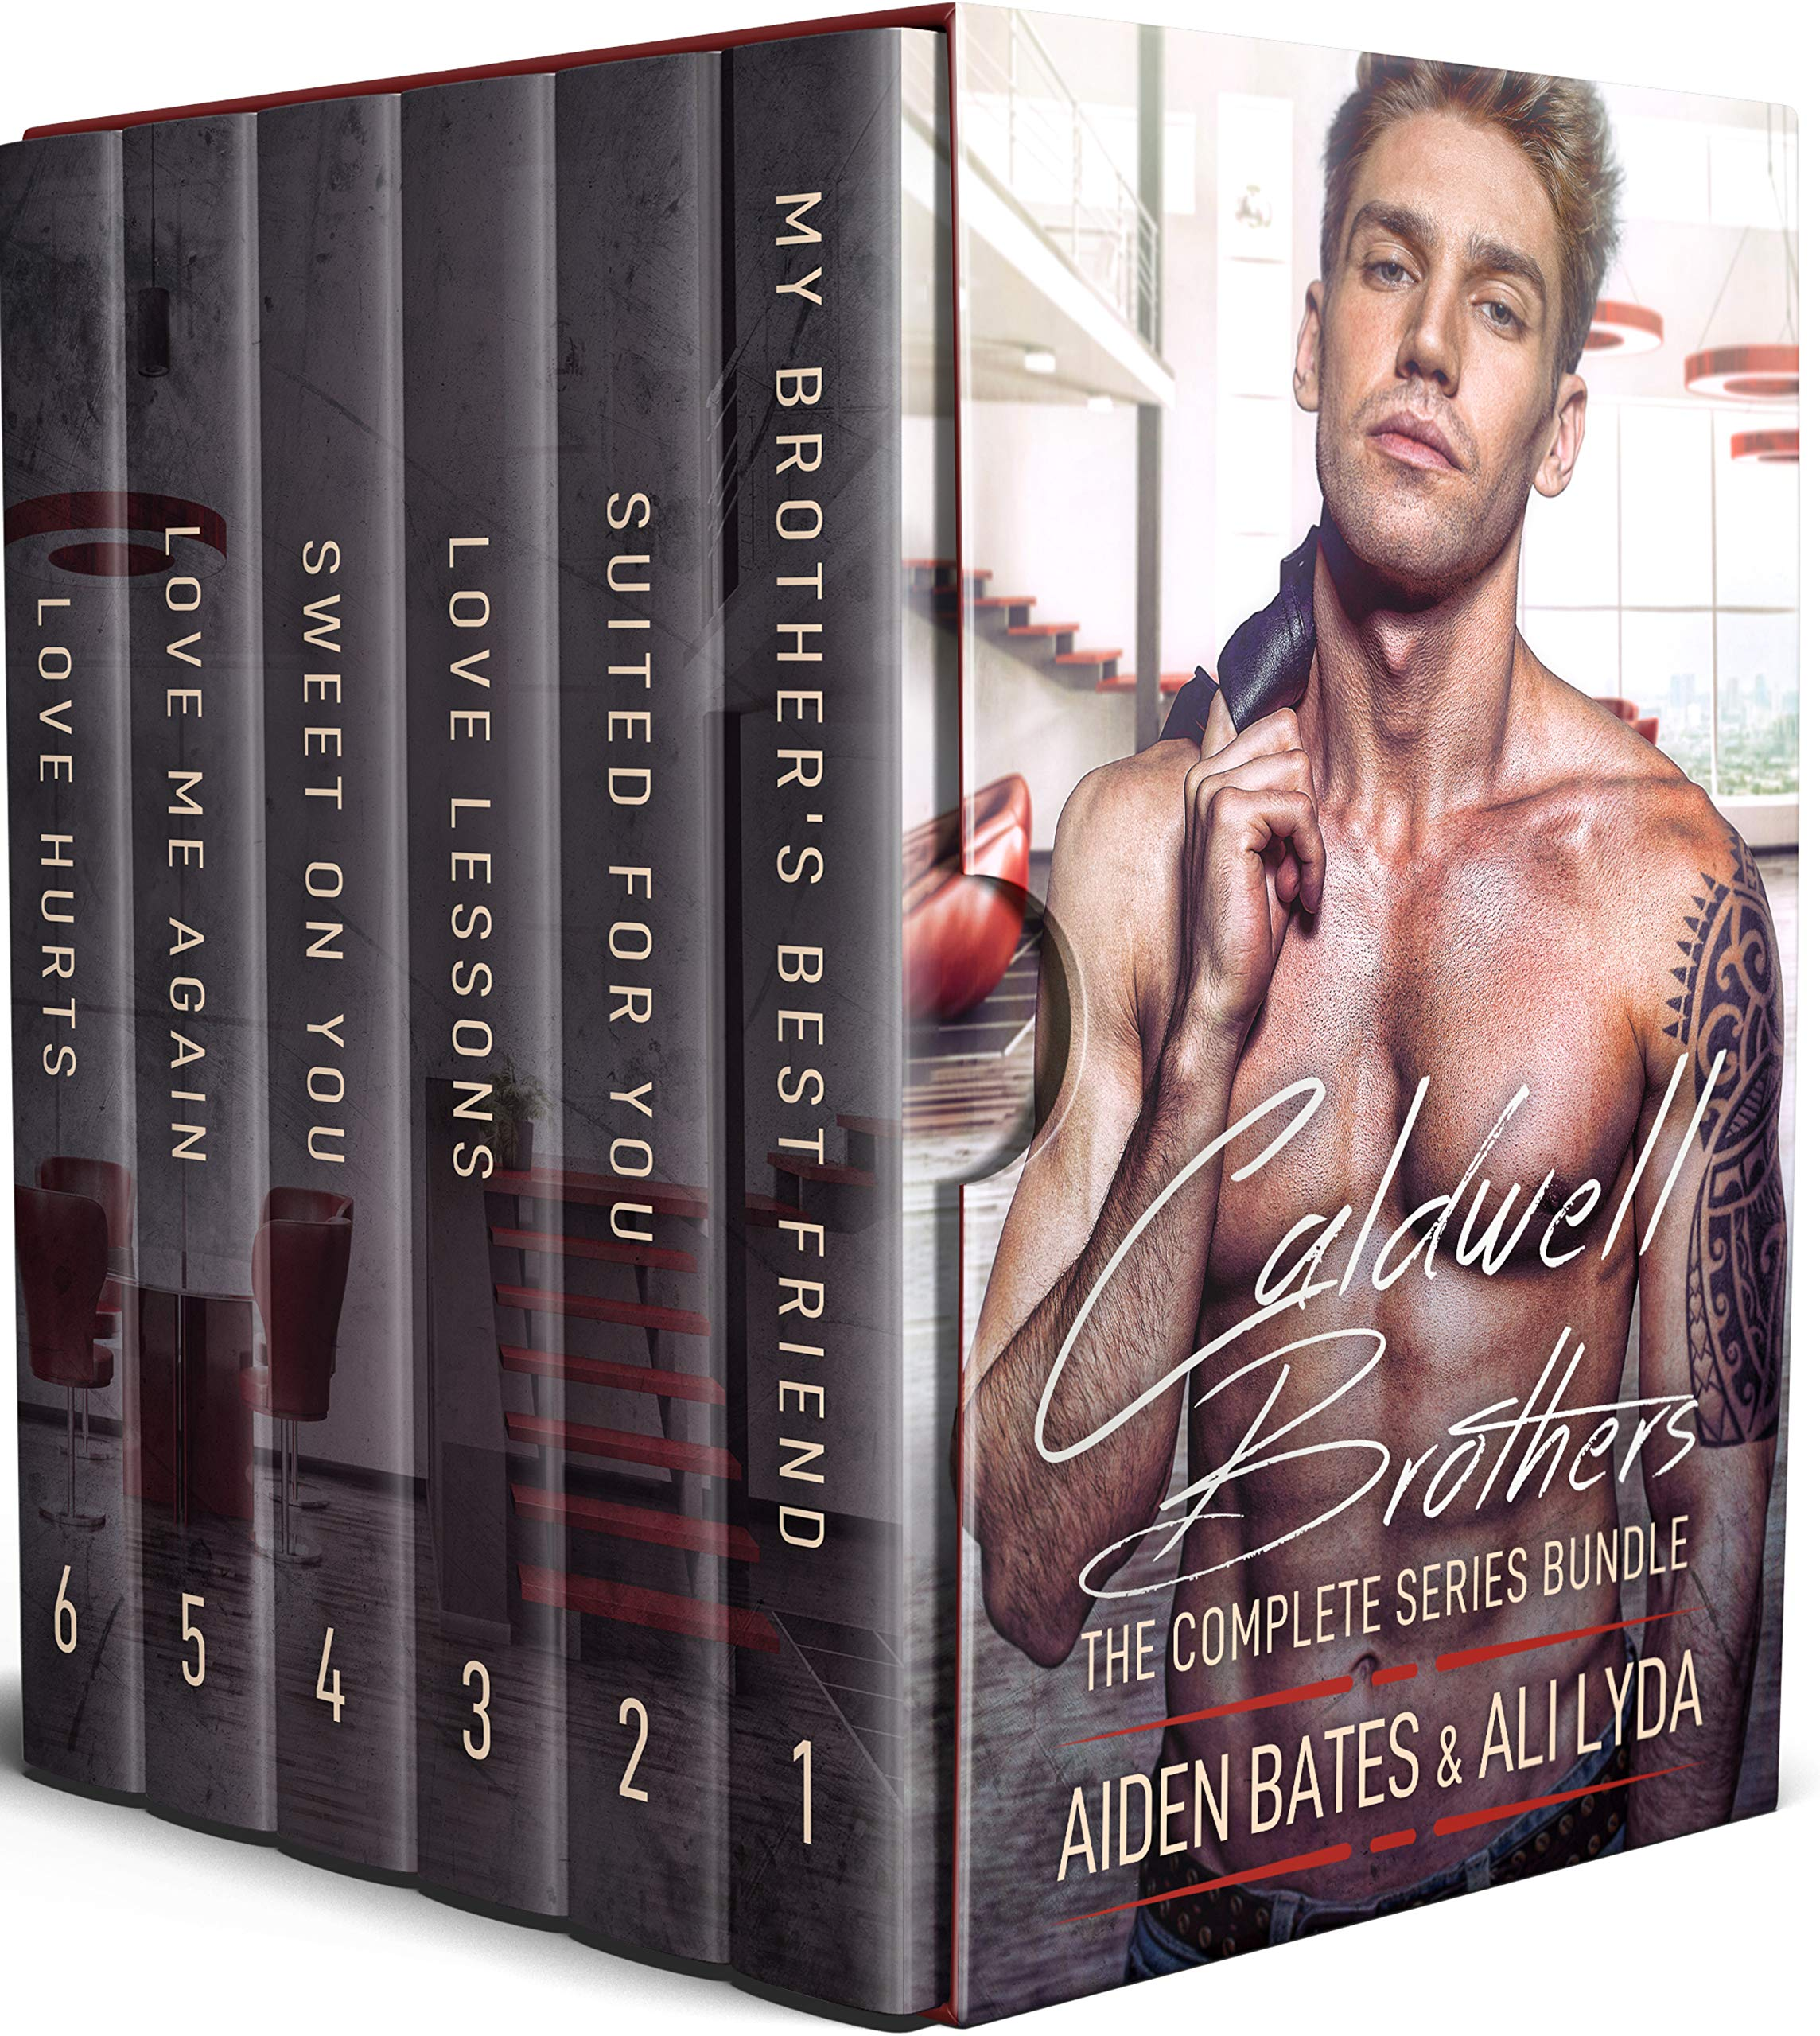 Caldwell Brothers: The Complete Series Bundle